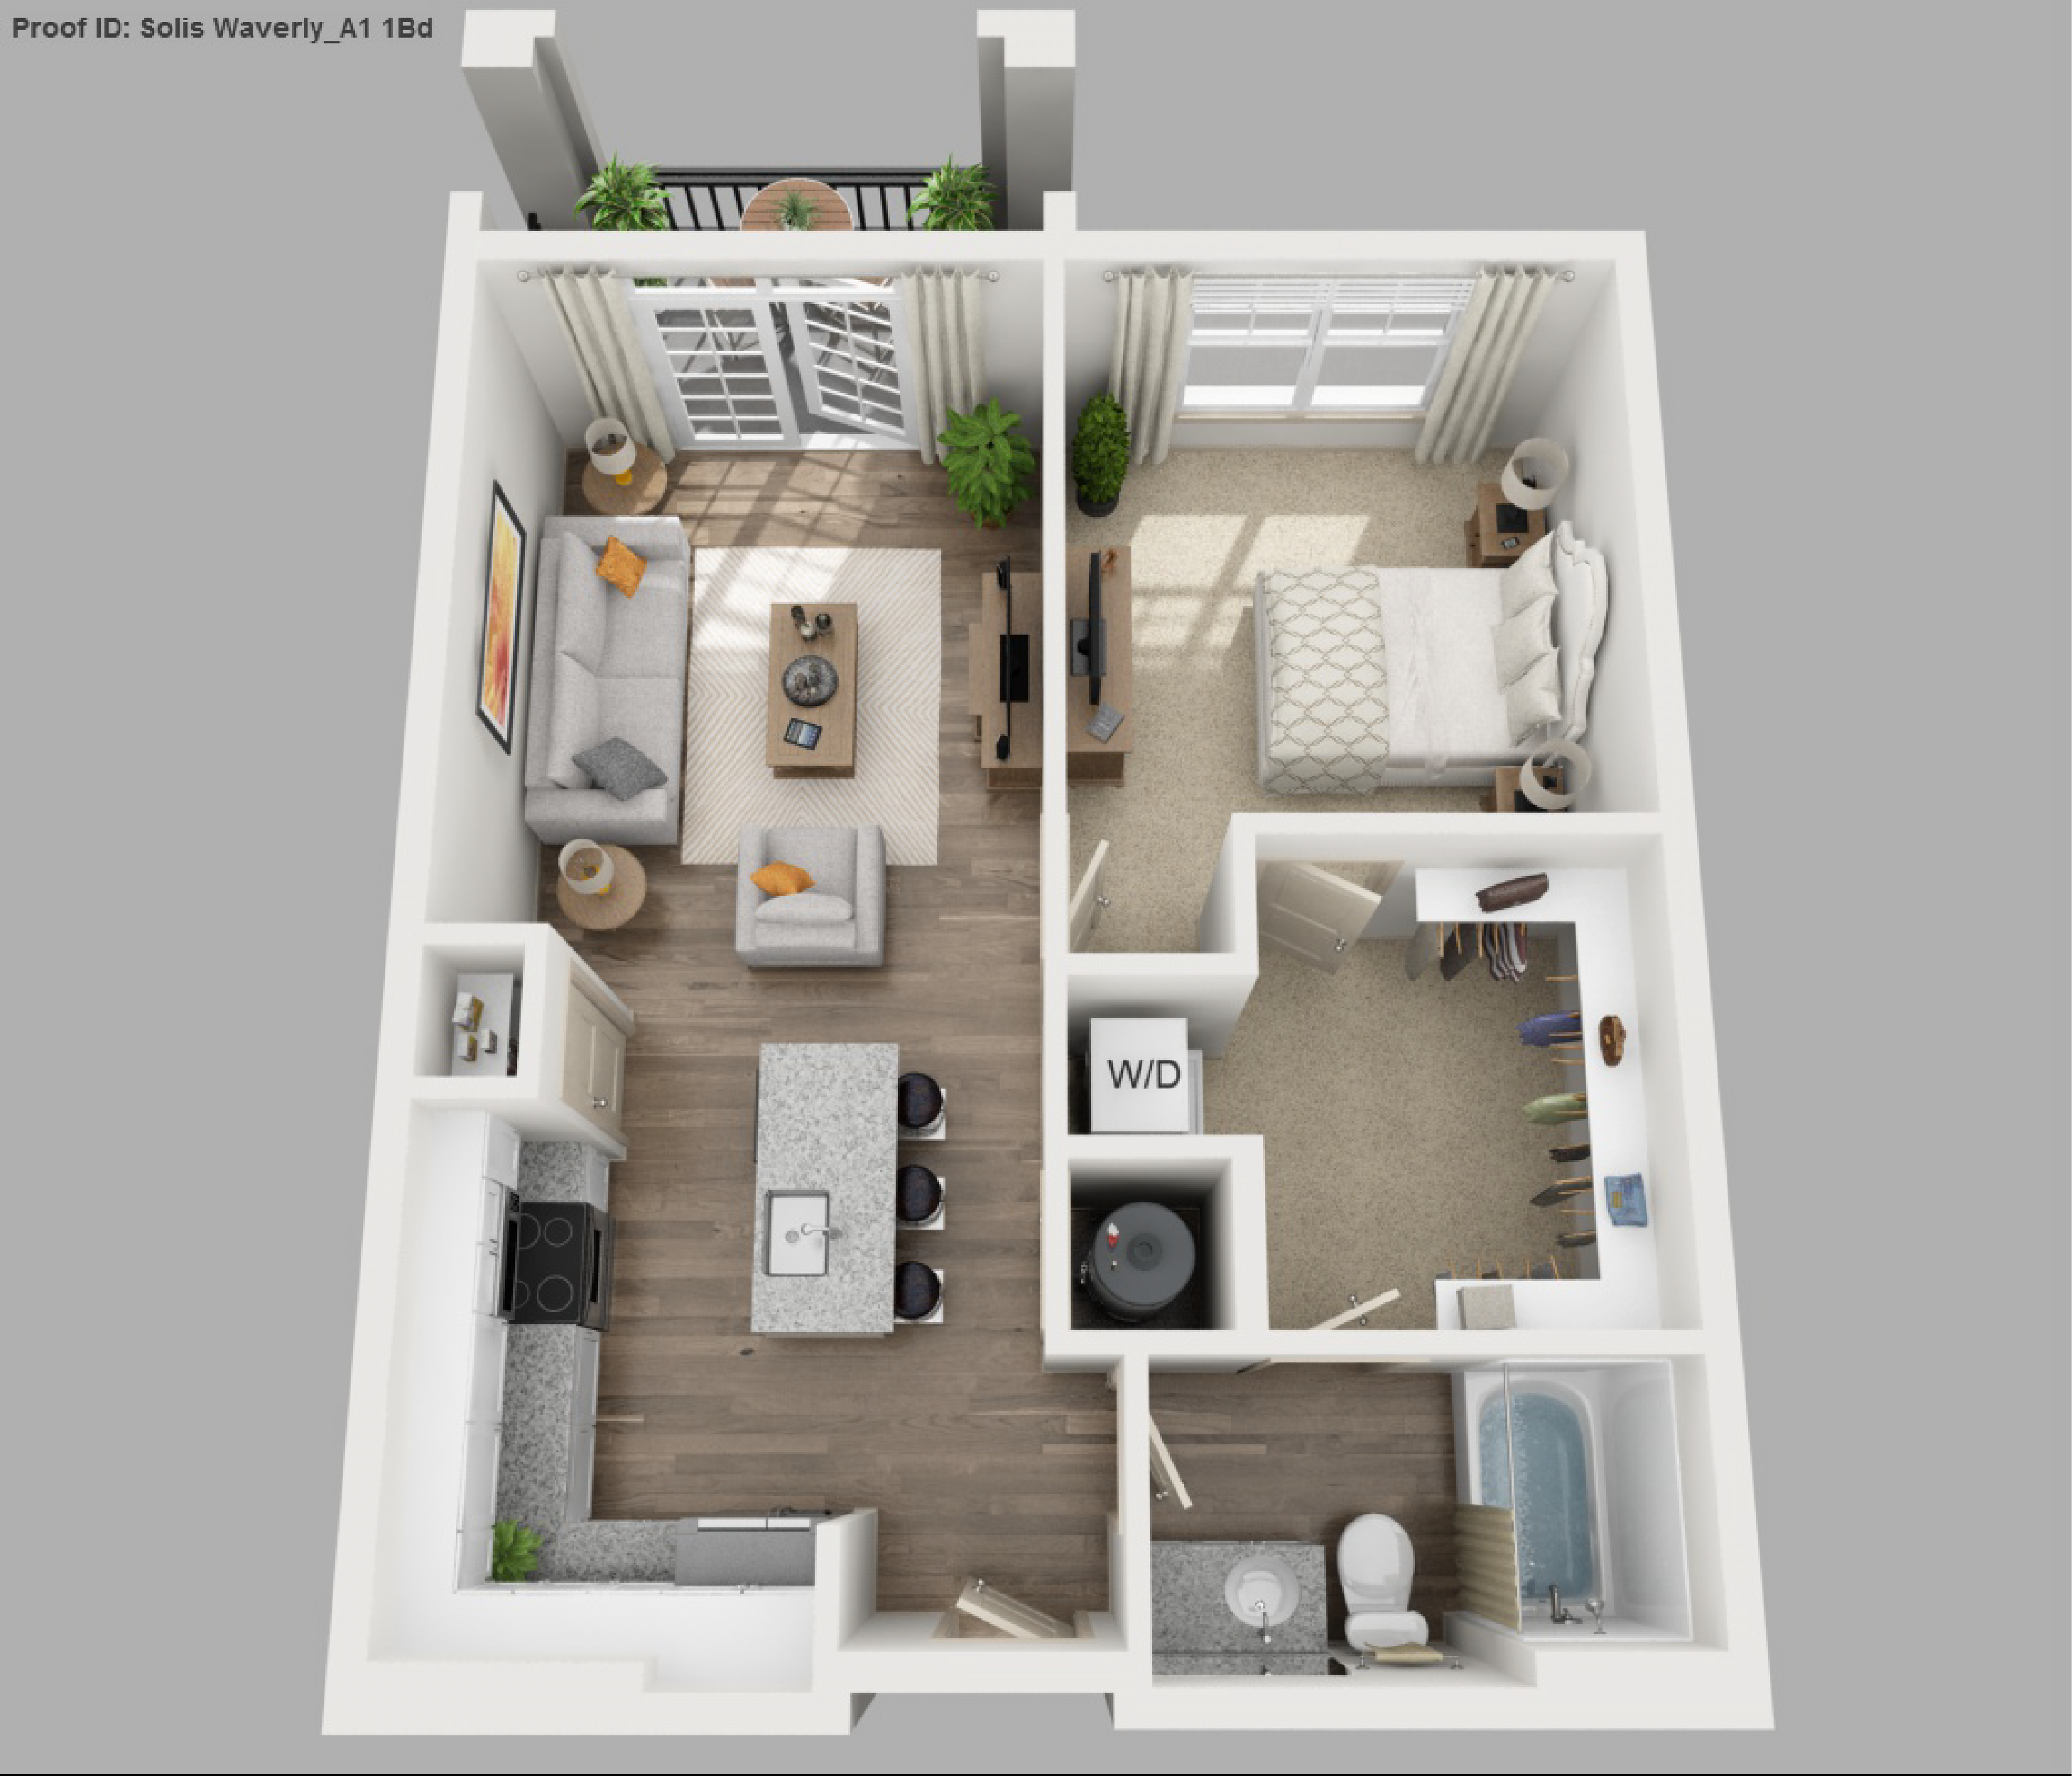 Apartment Floorplans. 1 Bedroom Apartments